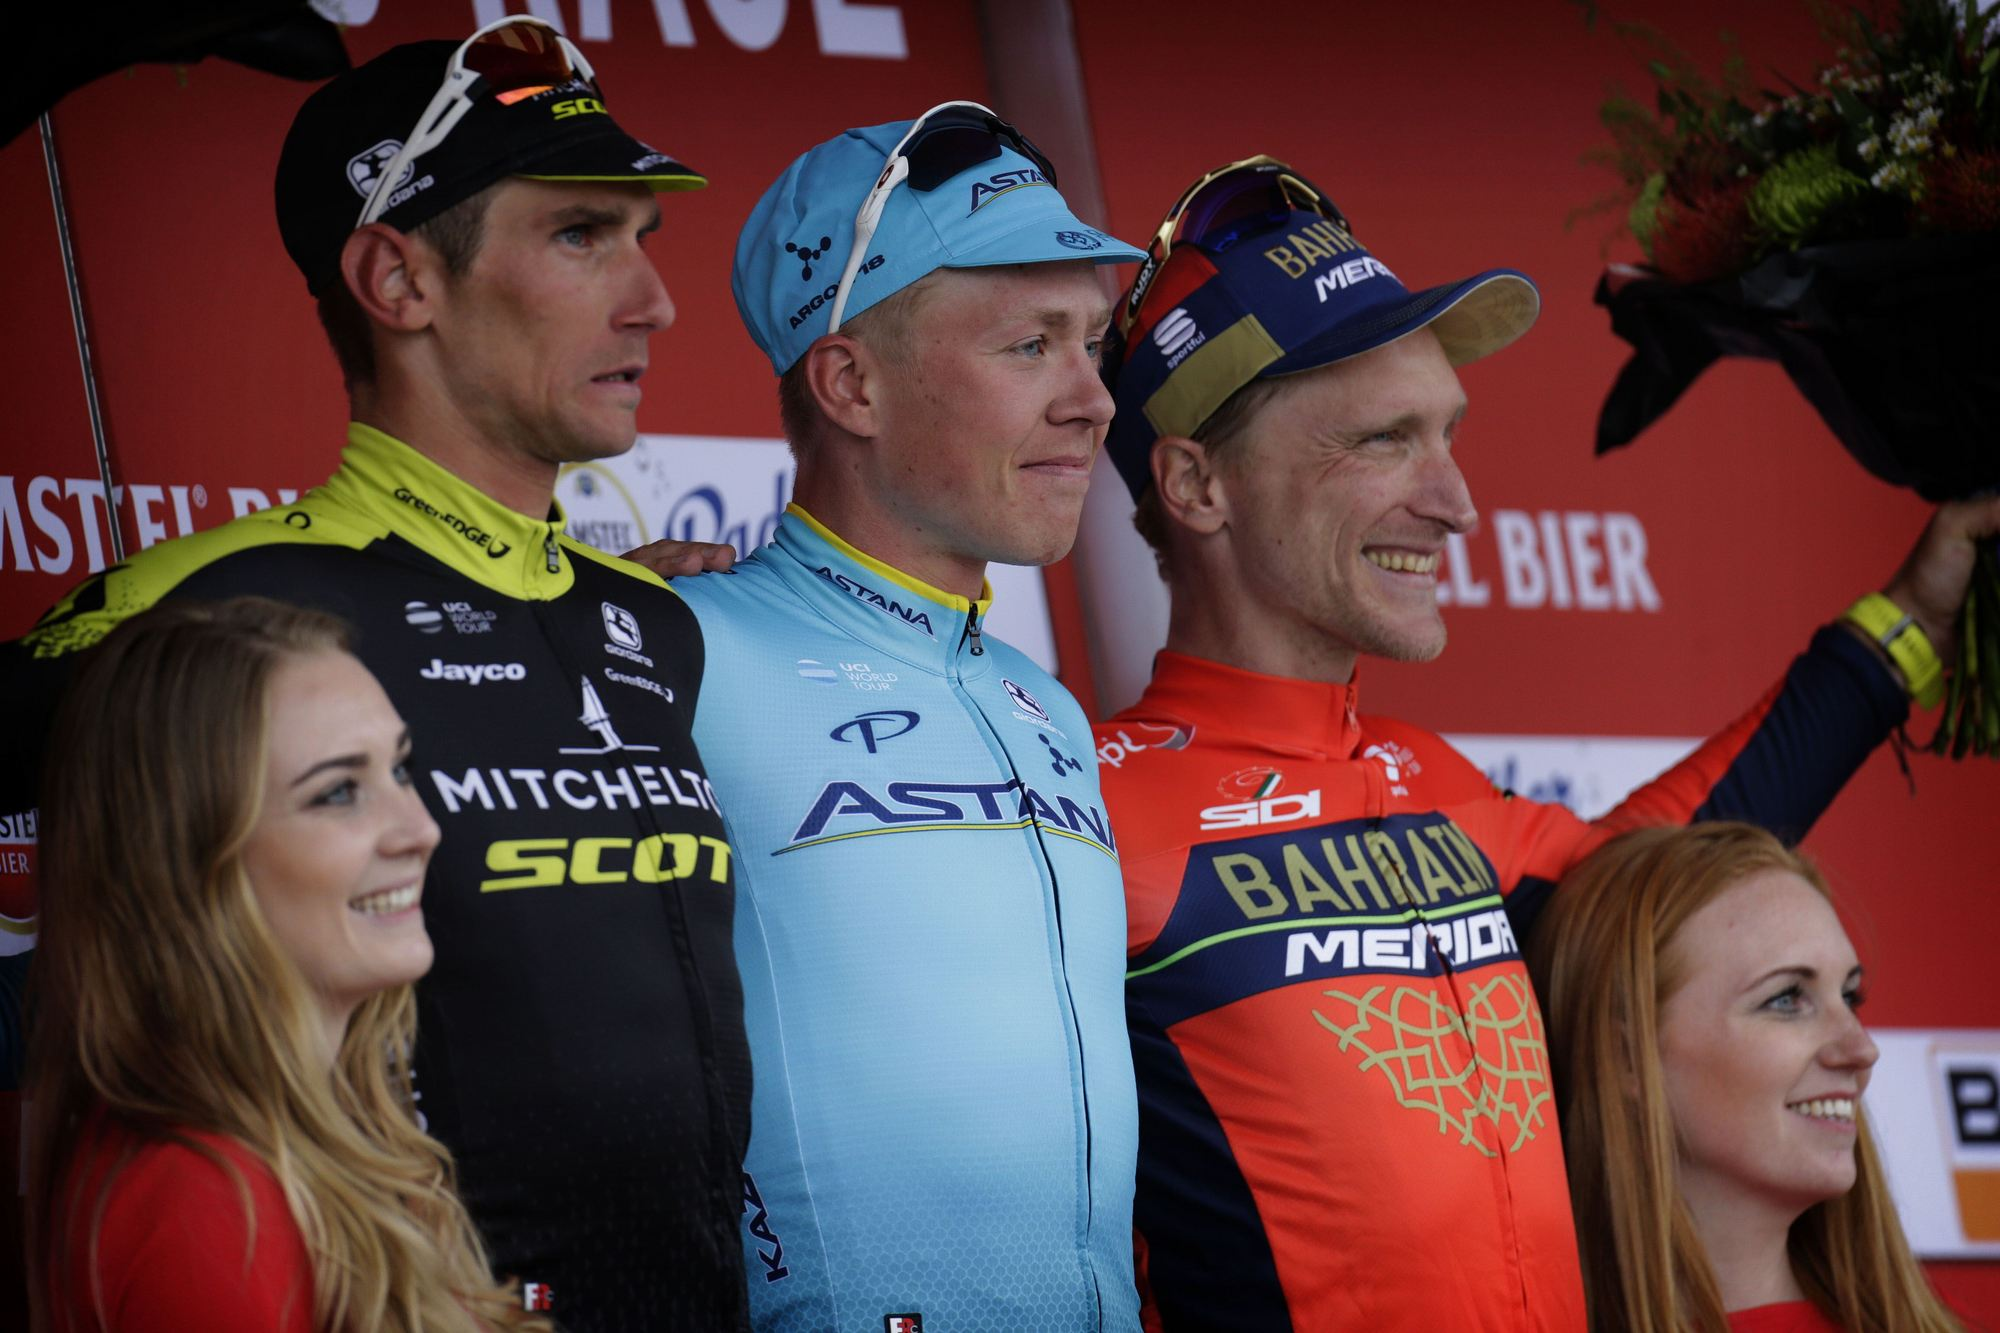 Enrico Gasparotto happy with podium finish at Amstel Gold ...